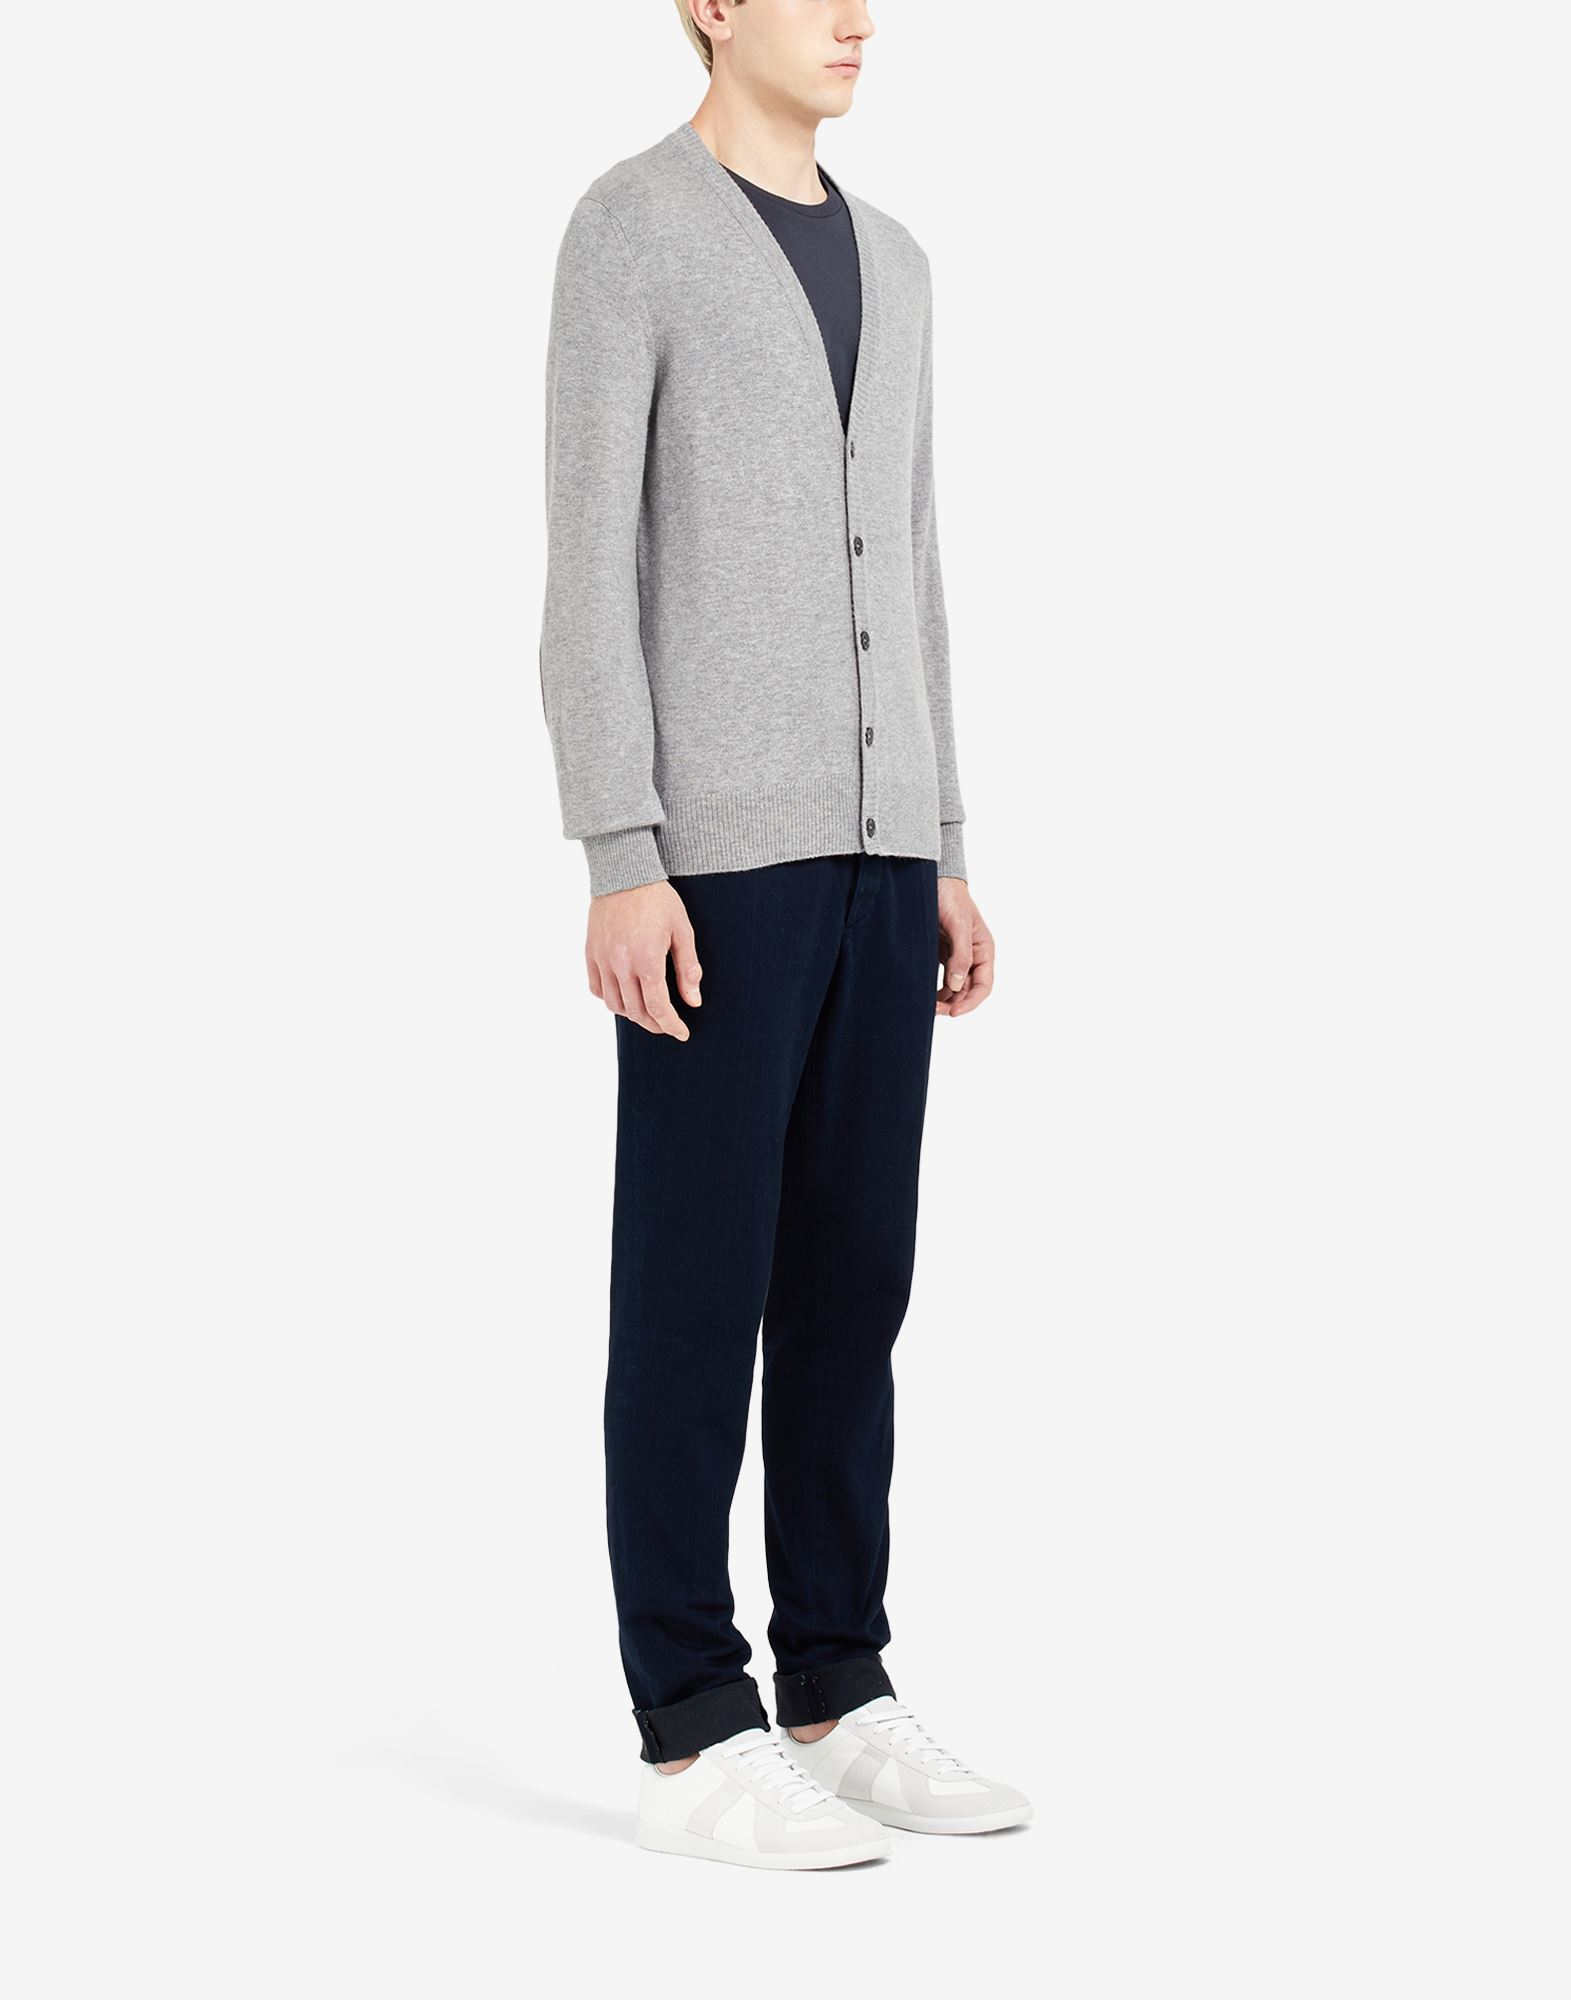 MAISON MARGIELA Leather elbow patch cardigan Cardigan Man d